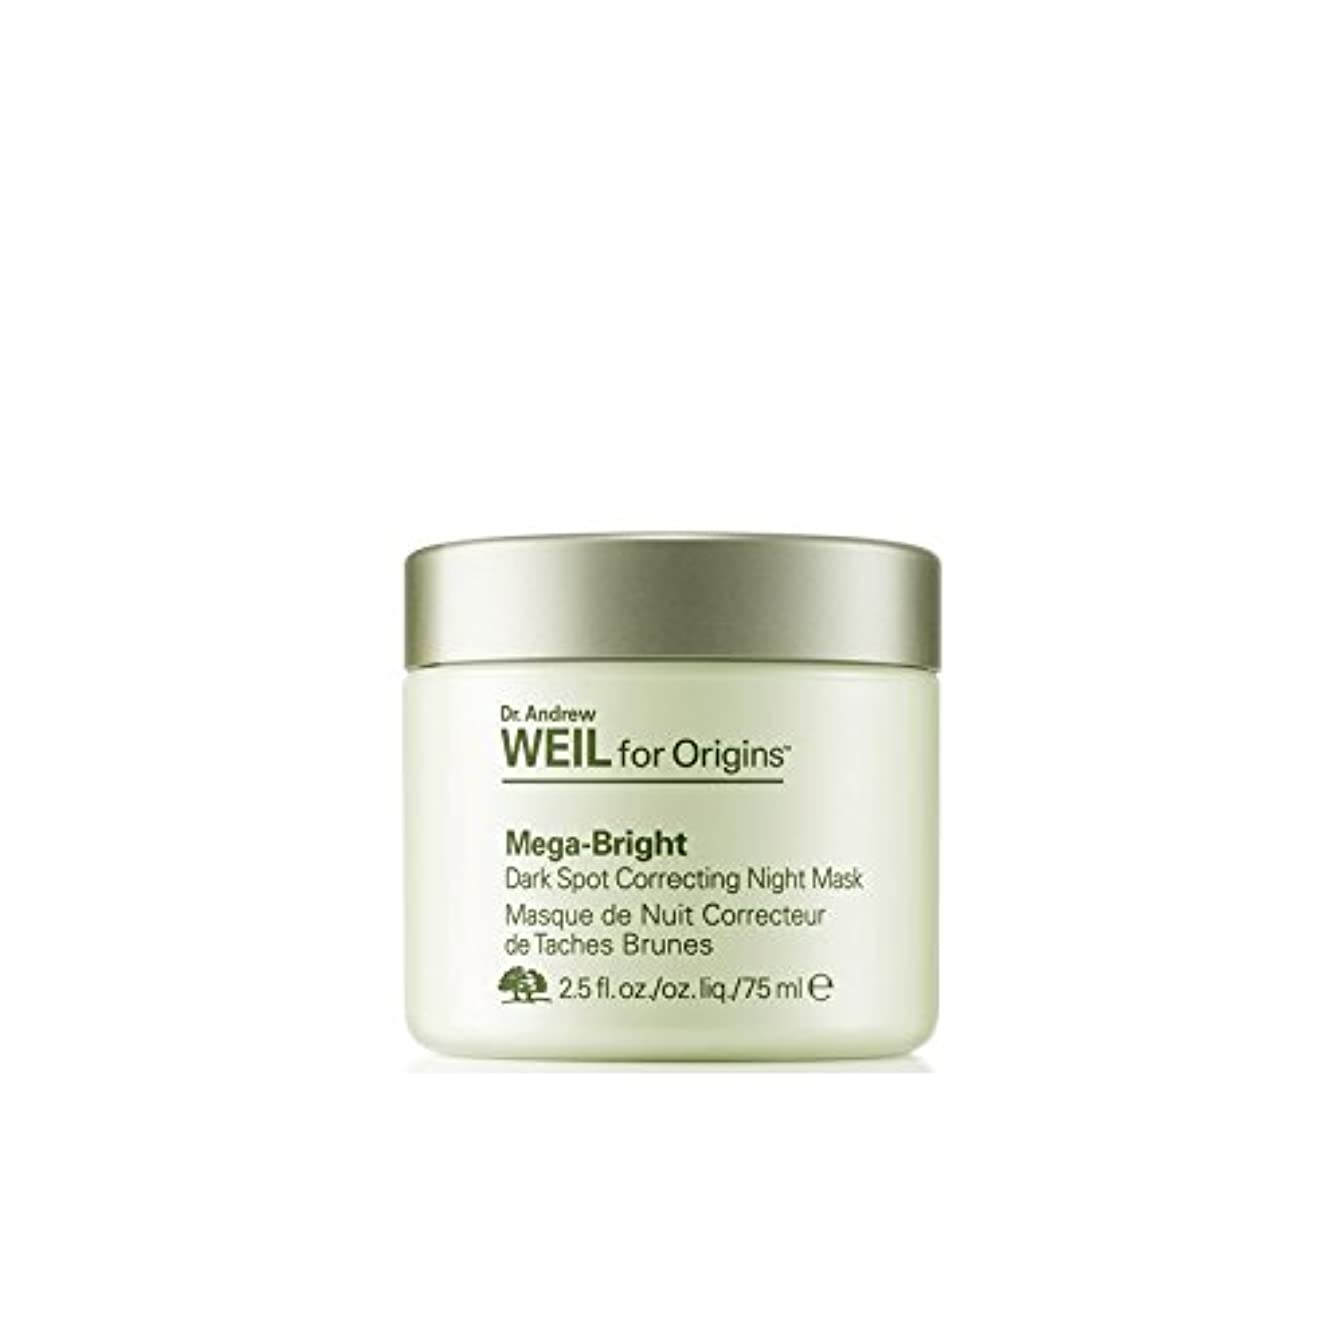 社交的非効率的なノベルティOrigins Dr. Andrew Weil For Origins? Mega-Bright Skin Tone Correcting Overnight Mask 75ml - 起源アンドルー?ワイル一晩マスク75...